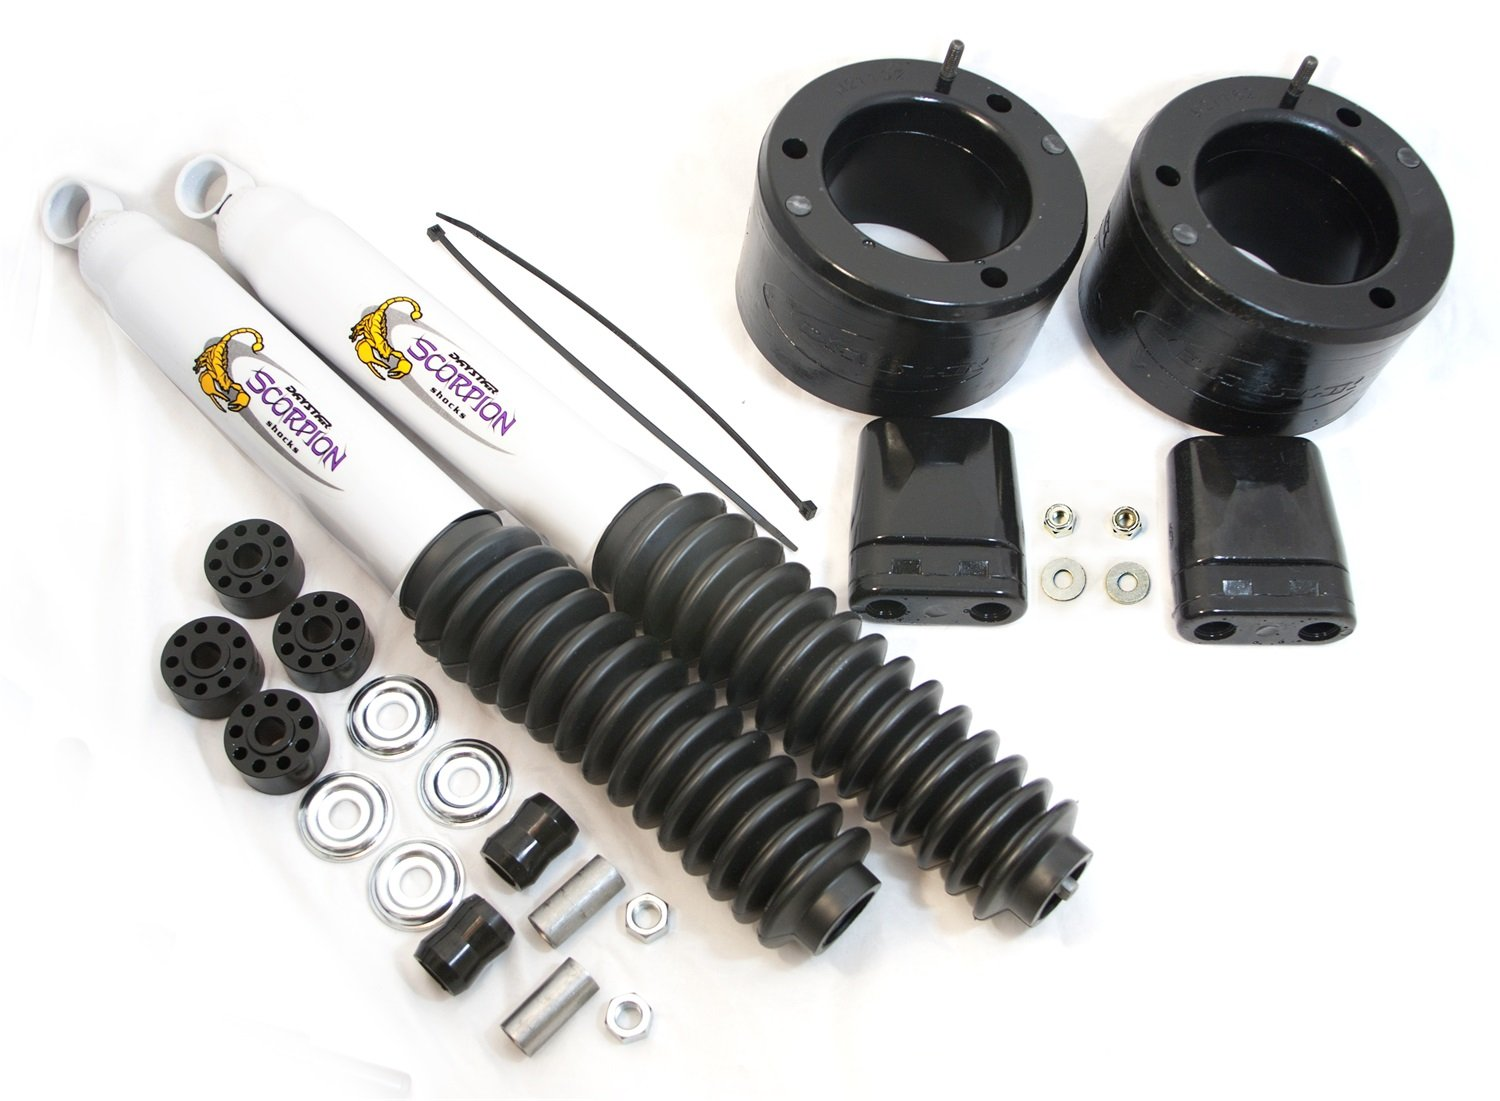 Daystar, Dodge RAM 2500/3500 2'' Leveling Kit with bump stops and front shocks, fits production date of May 2013 to 2017 4WD, all transmissions, all cabs, Does not fit Power Wagon KC09138BK, Made in America by Daystar